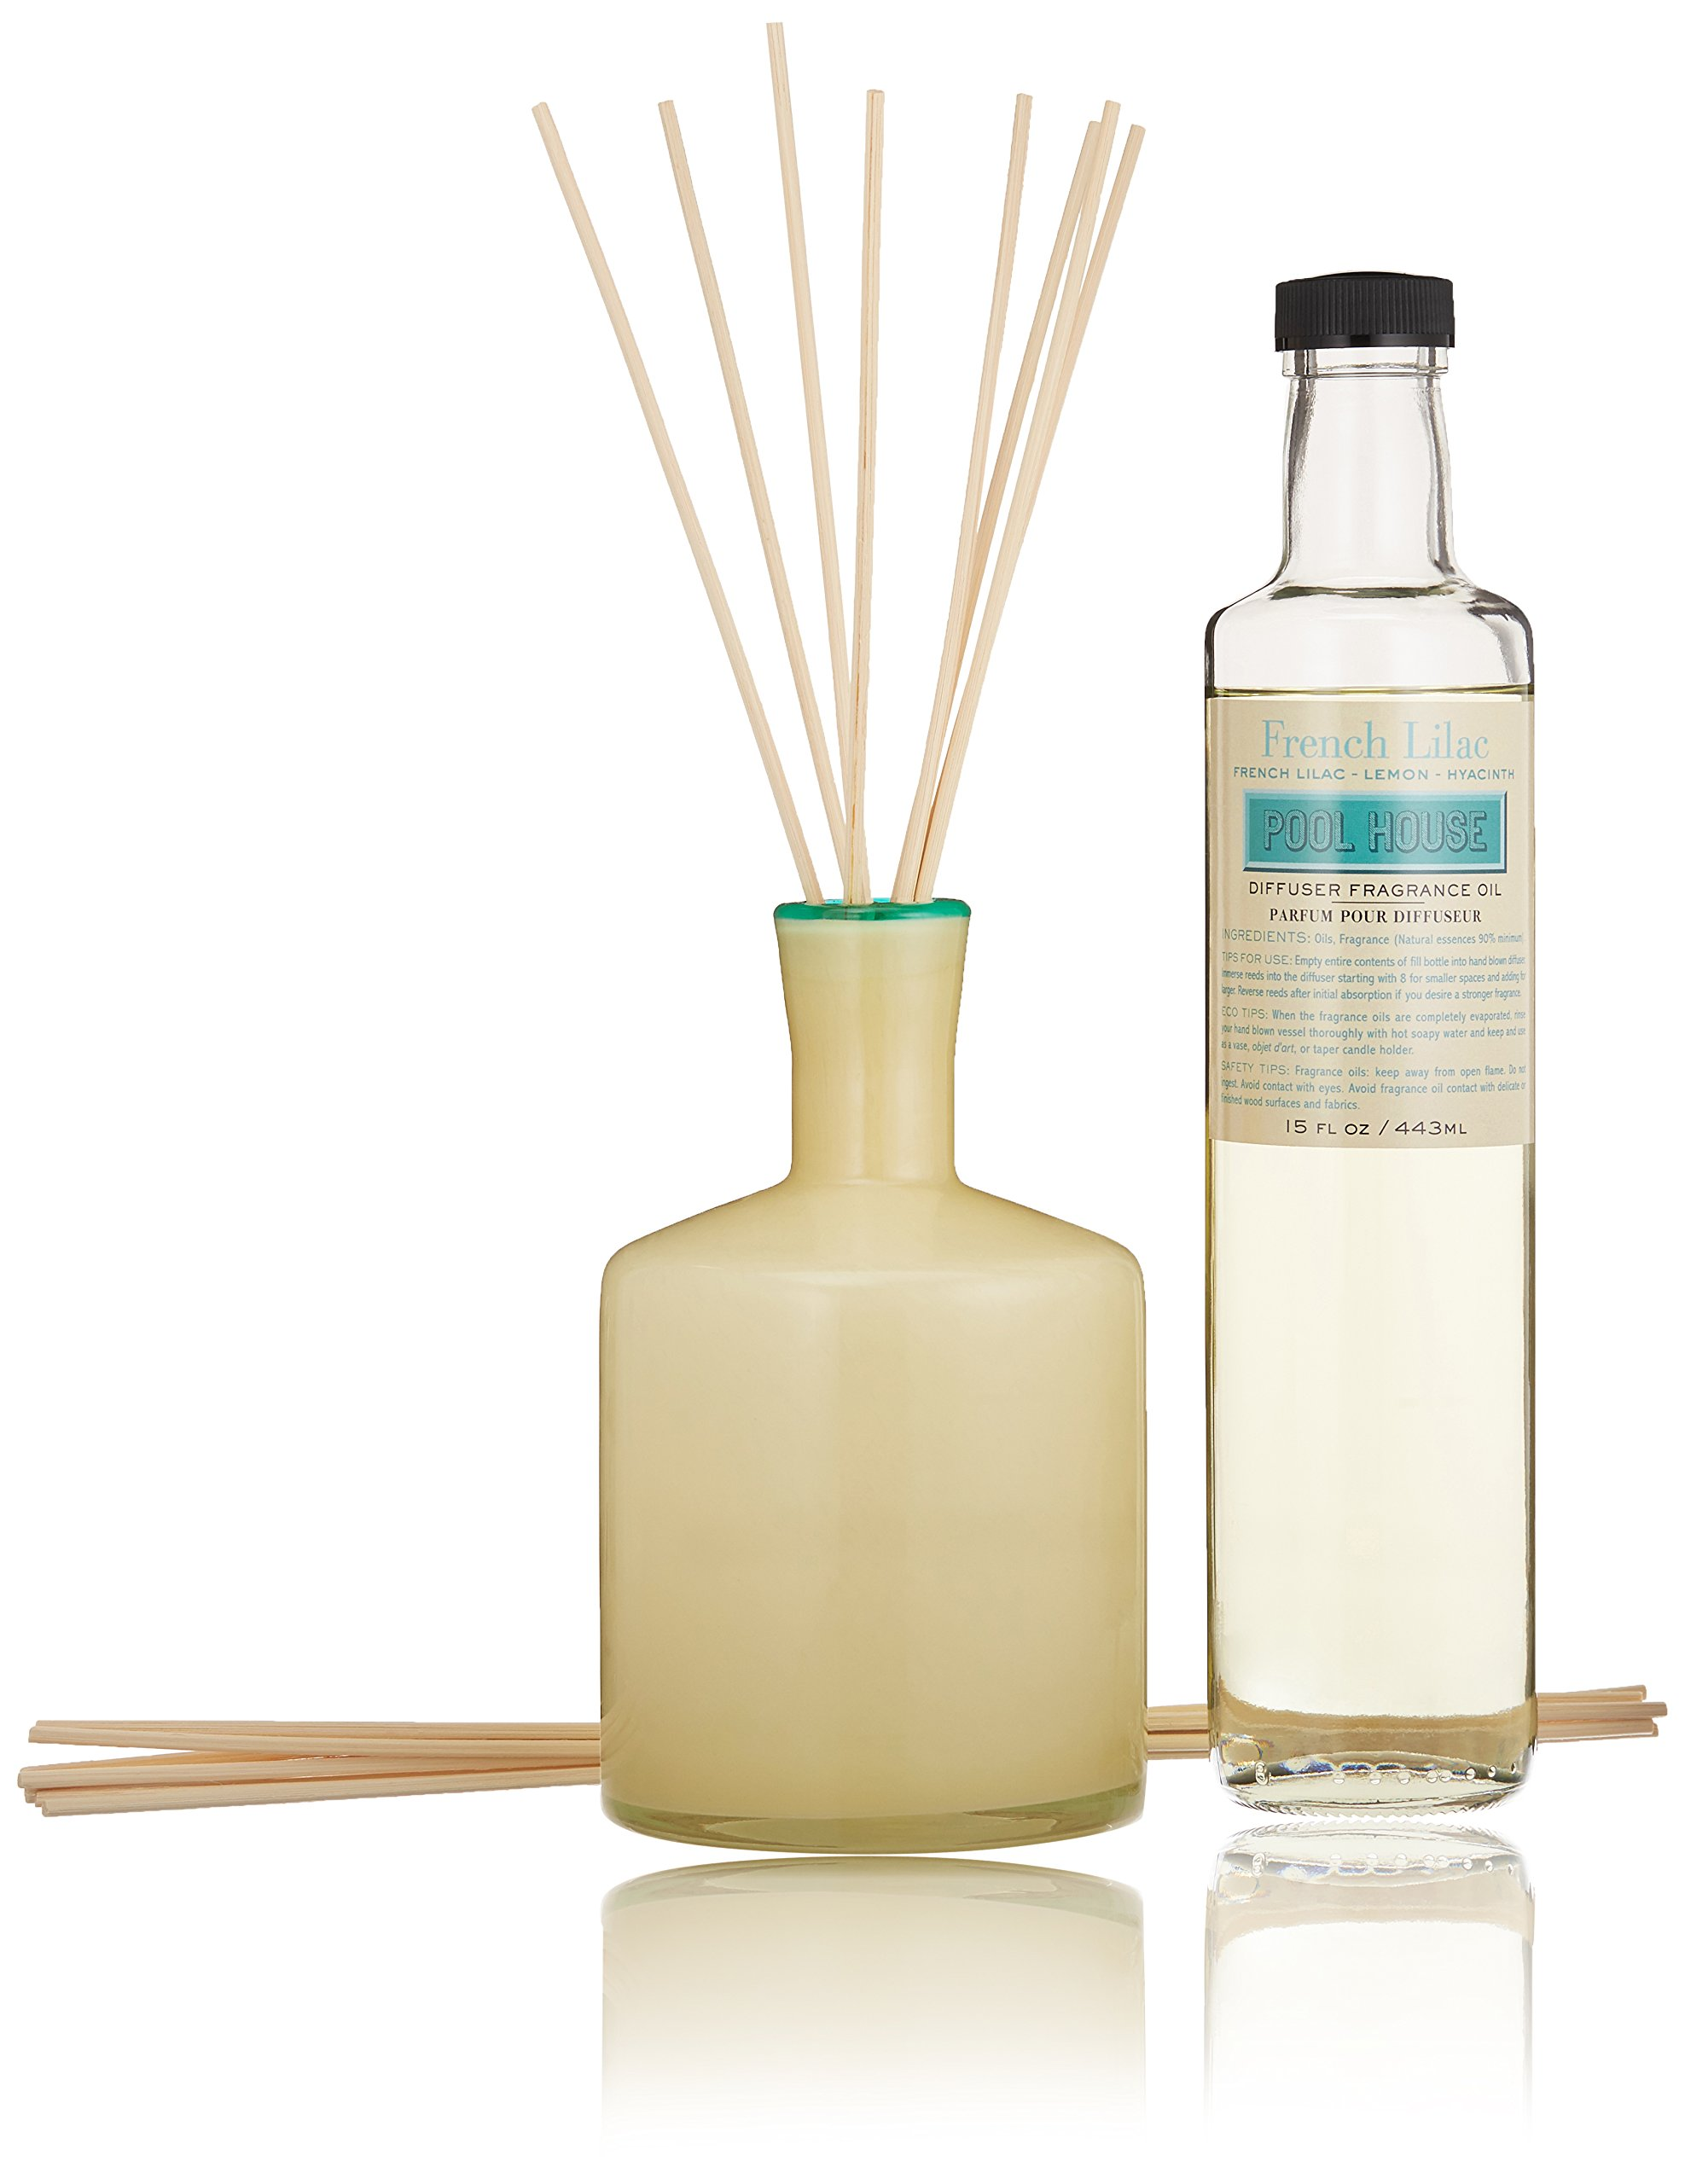 LAFCO House & Home Diffuser, Pool House French Lilac, 15 Fl Oz by LAFCO